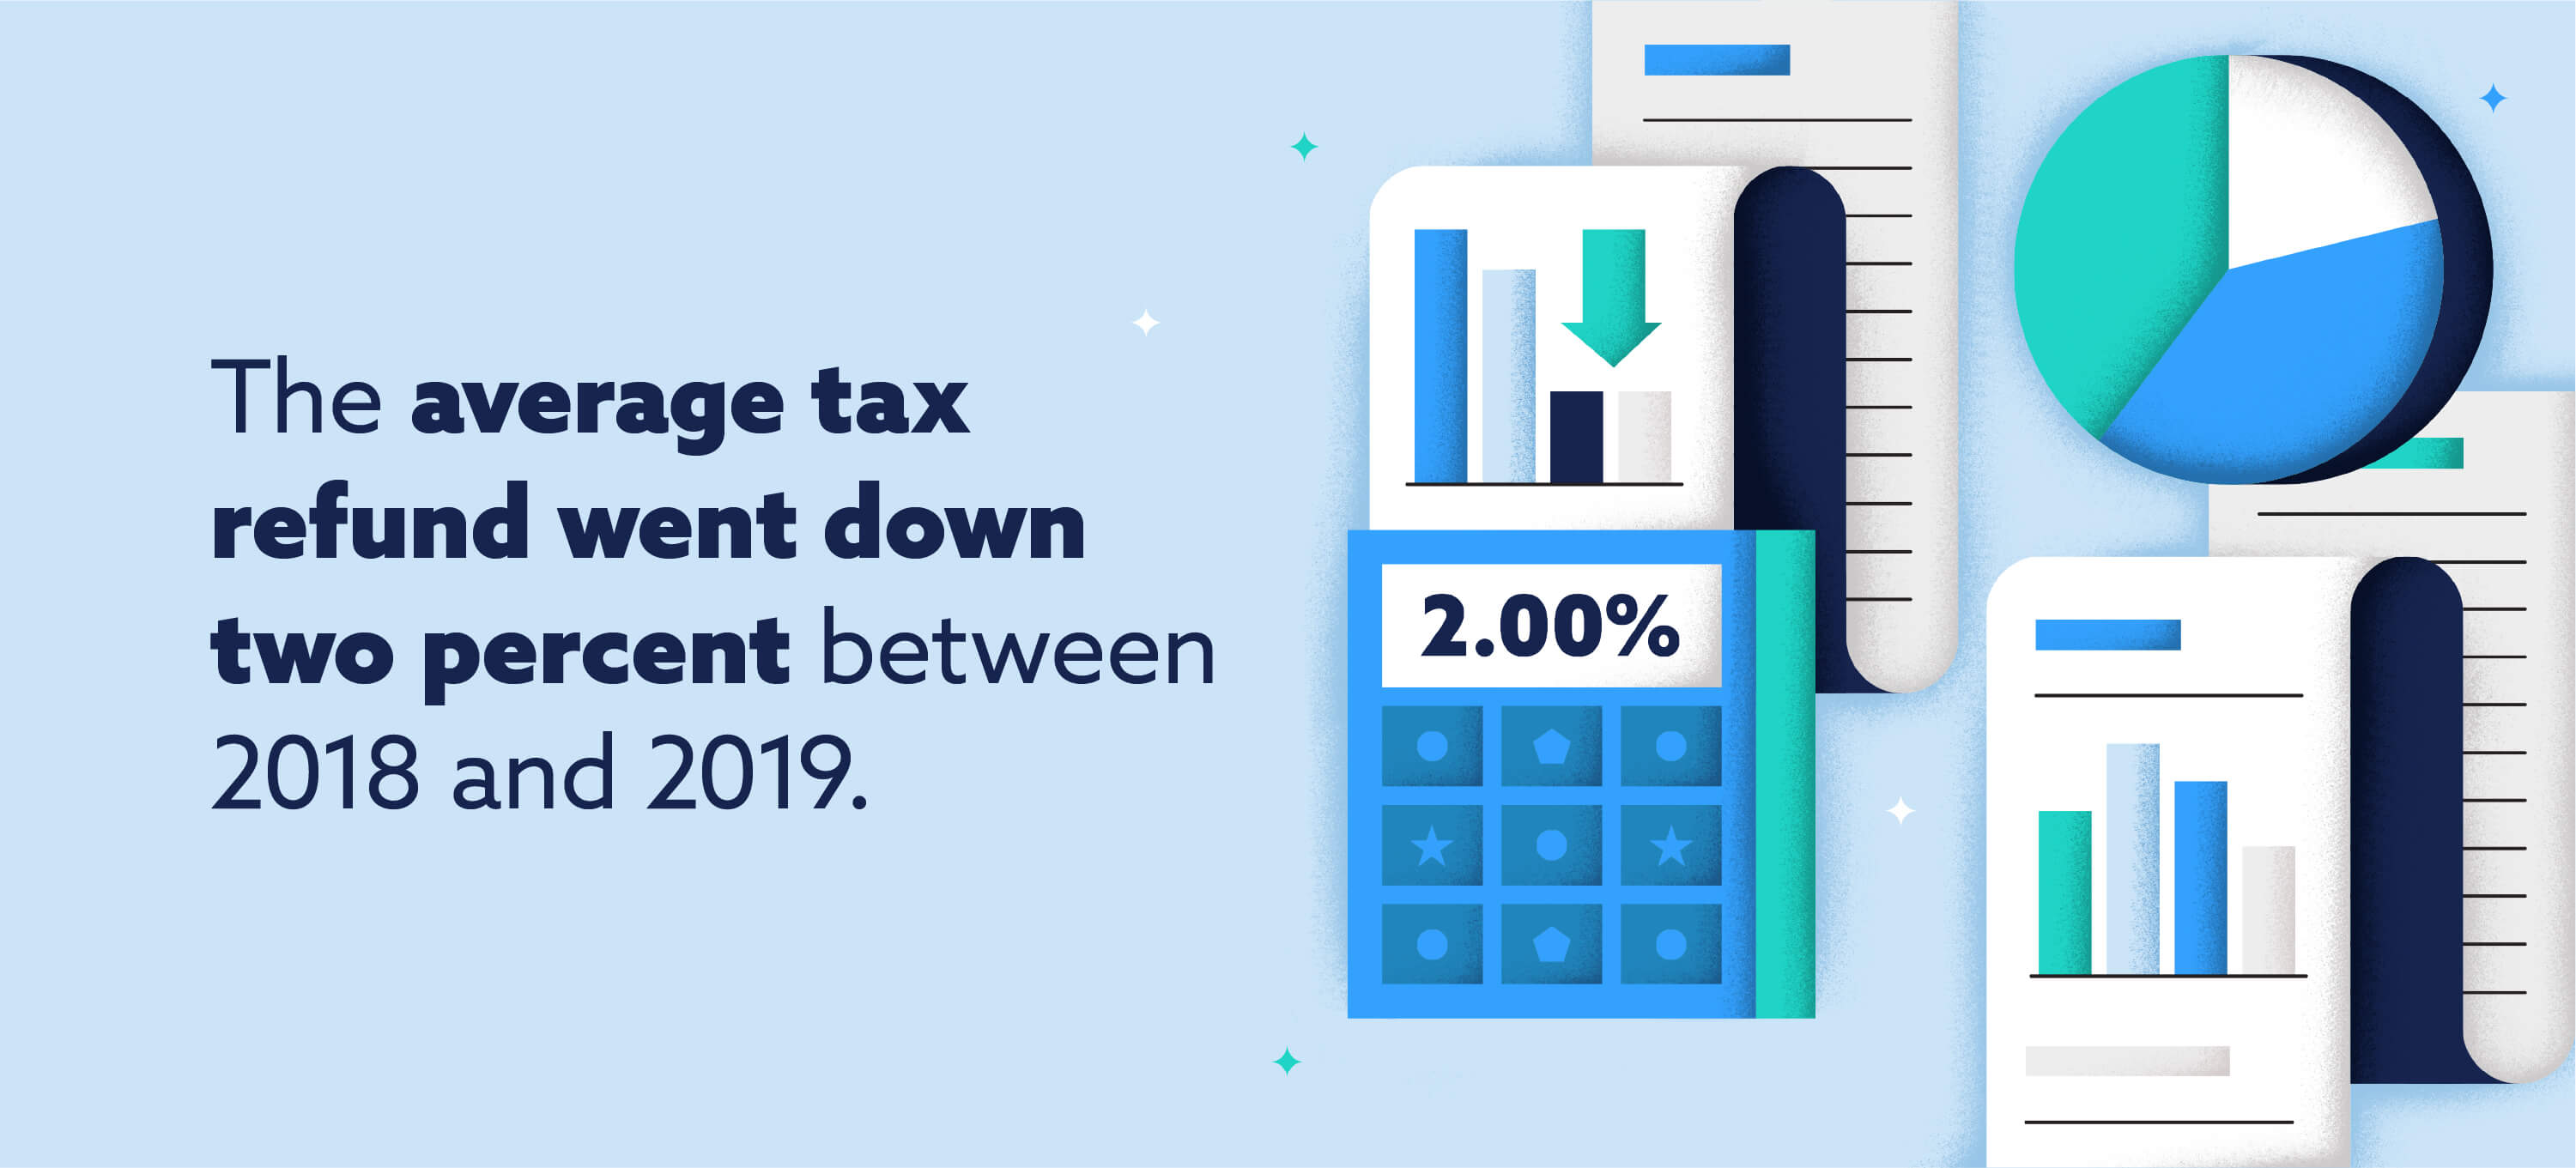 the average tax refund went down two percent between 2018 and 2019